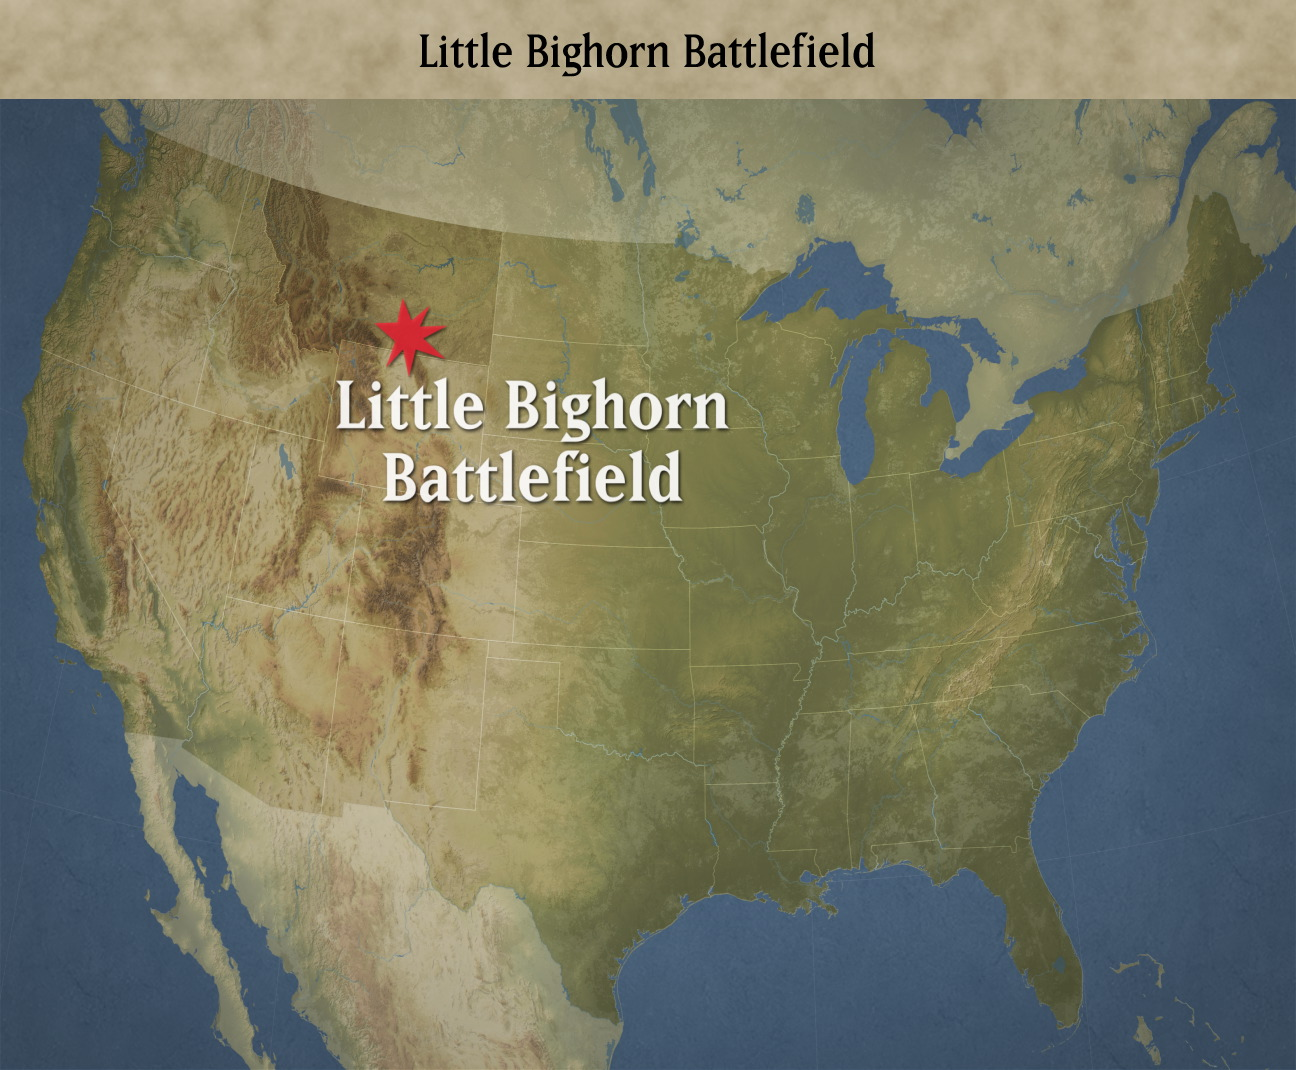 Graphic Firing Table Battles That Changed History Little Bighorn - Little bighorn river location on us map